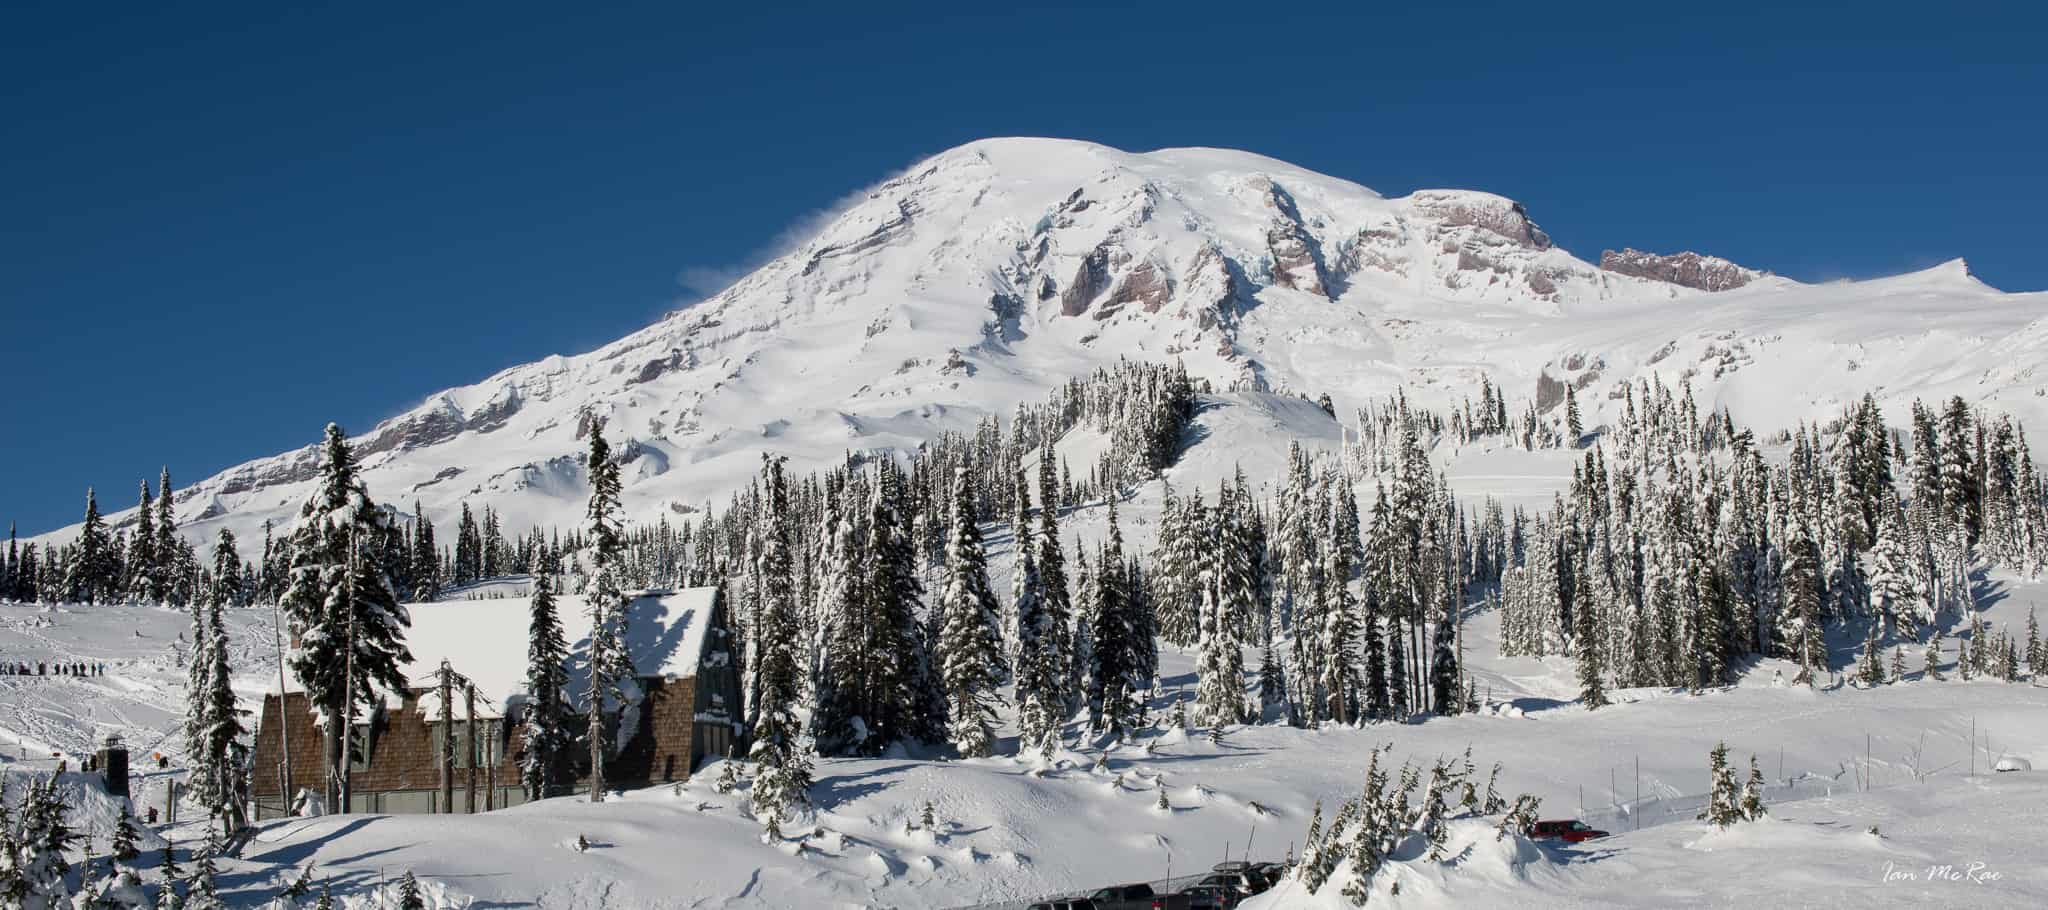 Mt Rainier covered in snow